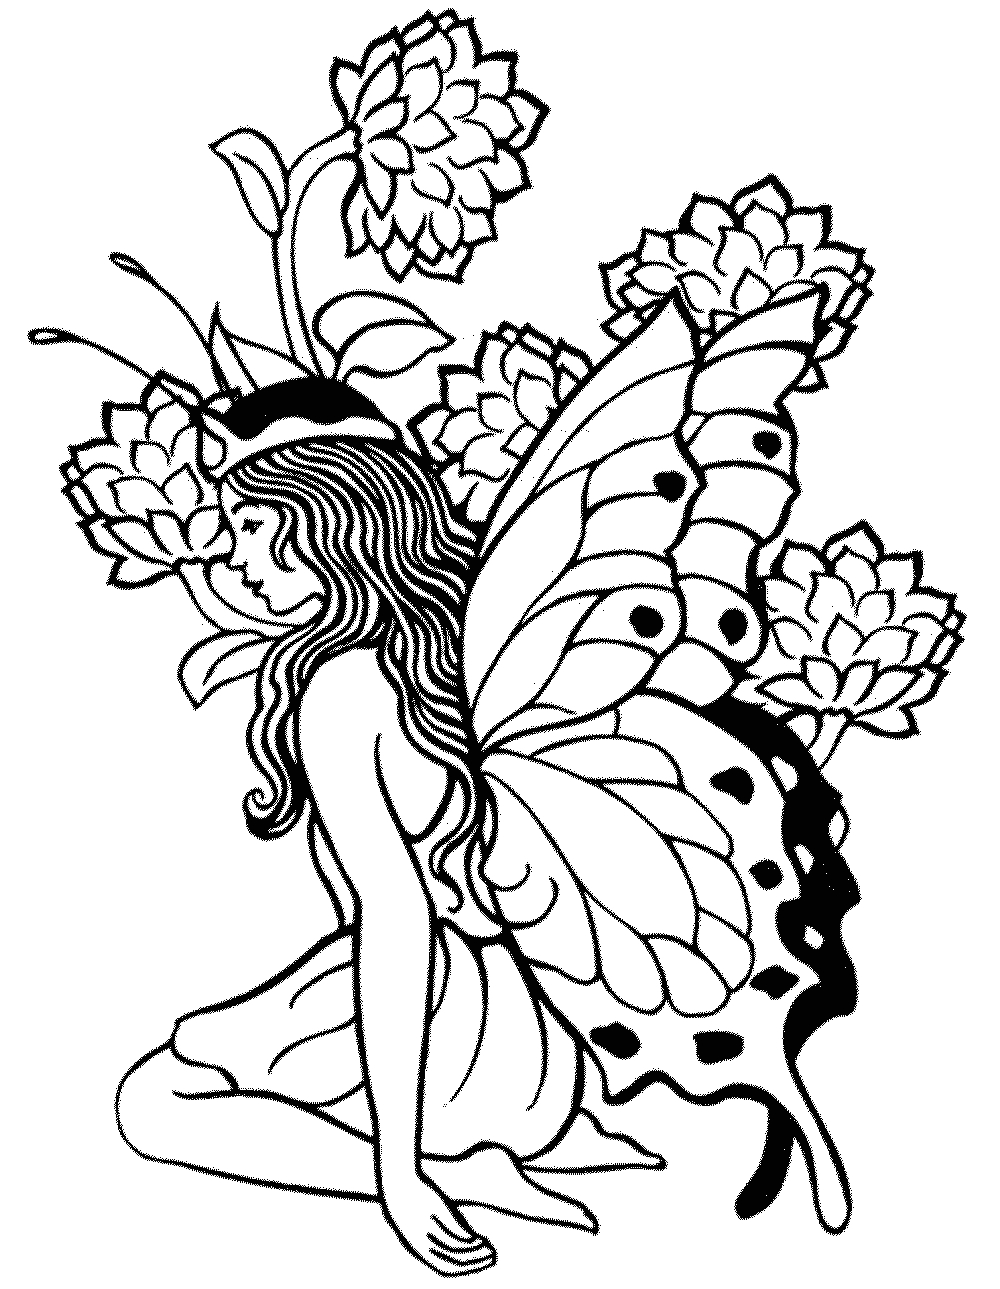 Free Printable Fairy Coloring Pages for Adults Printable Adult Coloring Pages Fairy Coloring Home